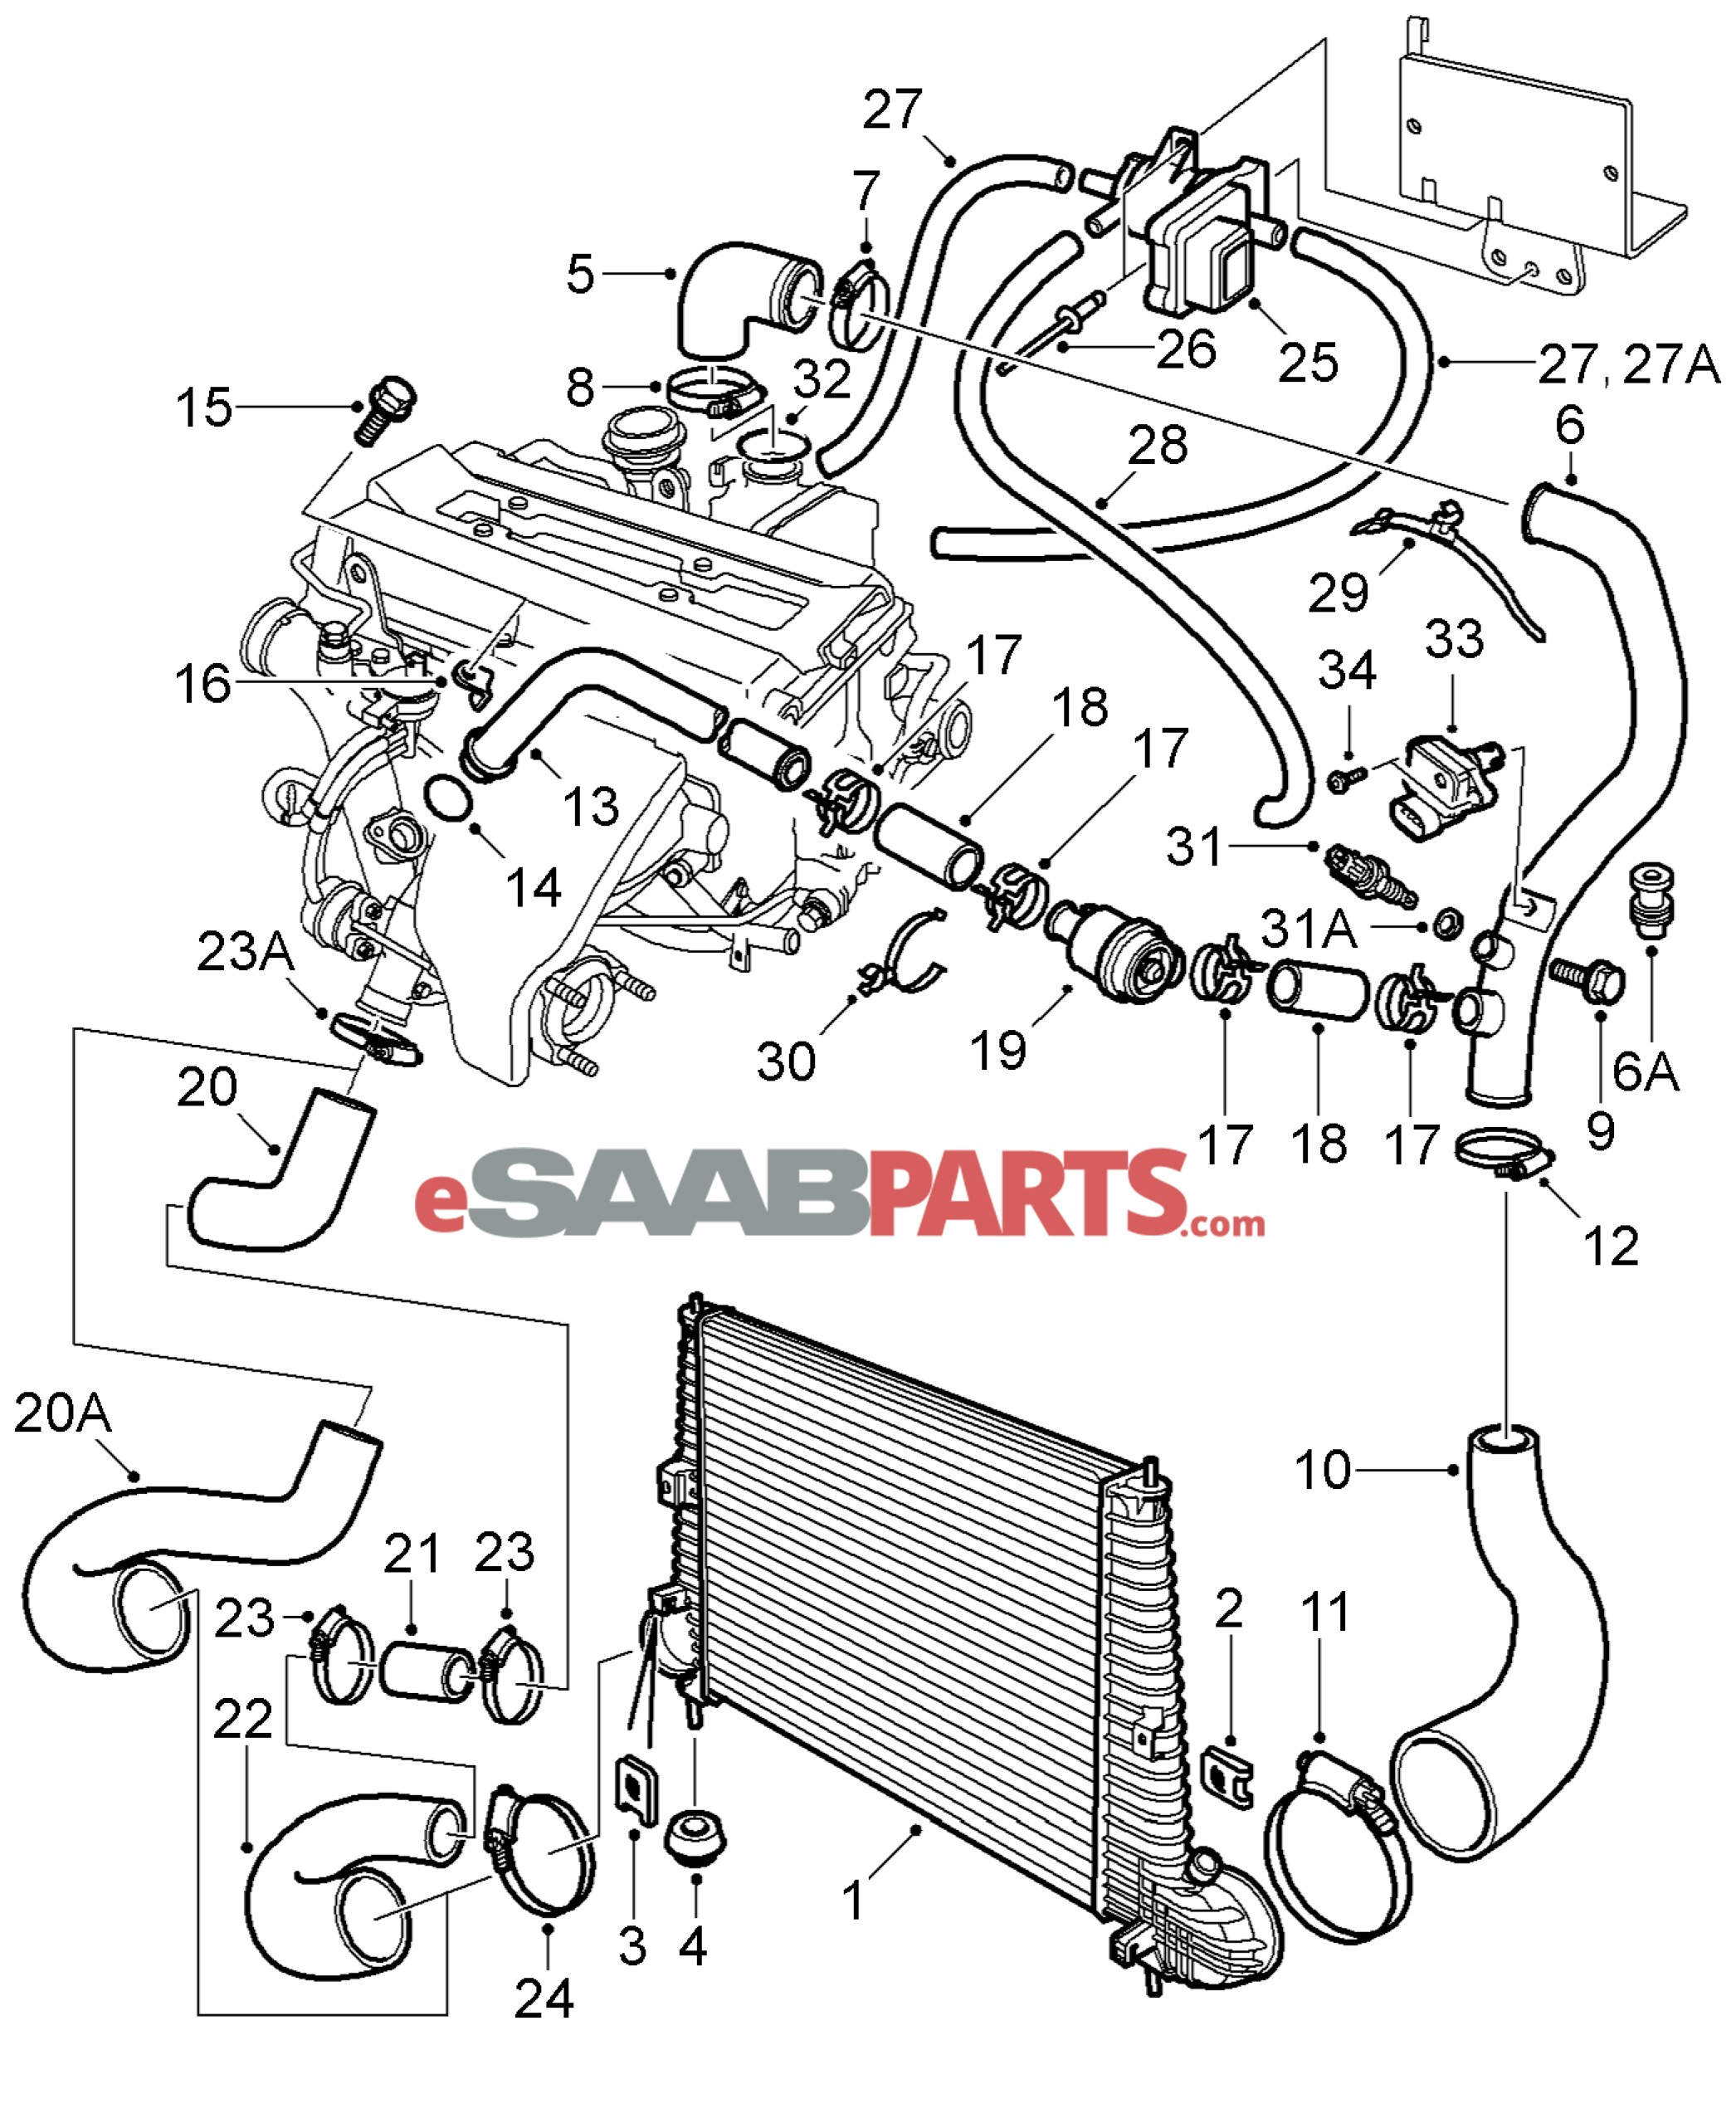 Saab 9 3 Engine Schematics Not Lossing Wiring Diagram 2003 Fuse Box 900 Library Rh 2 Pgserver De Parts Catalog